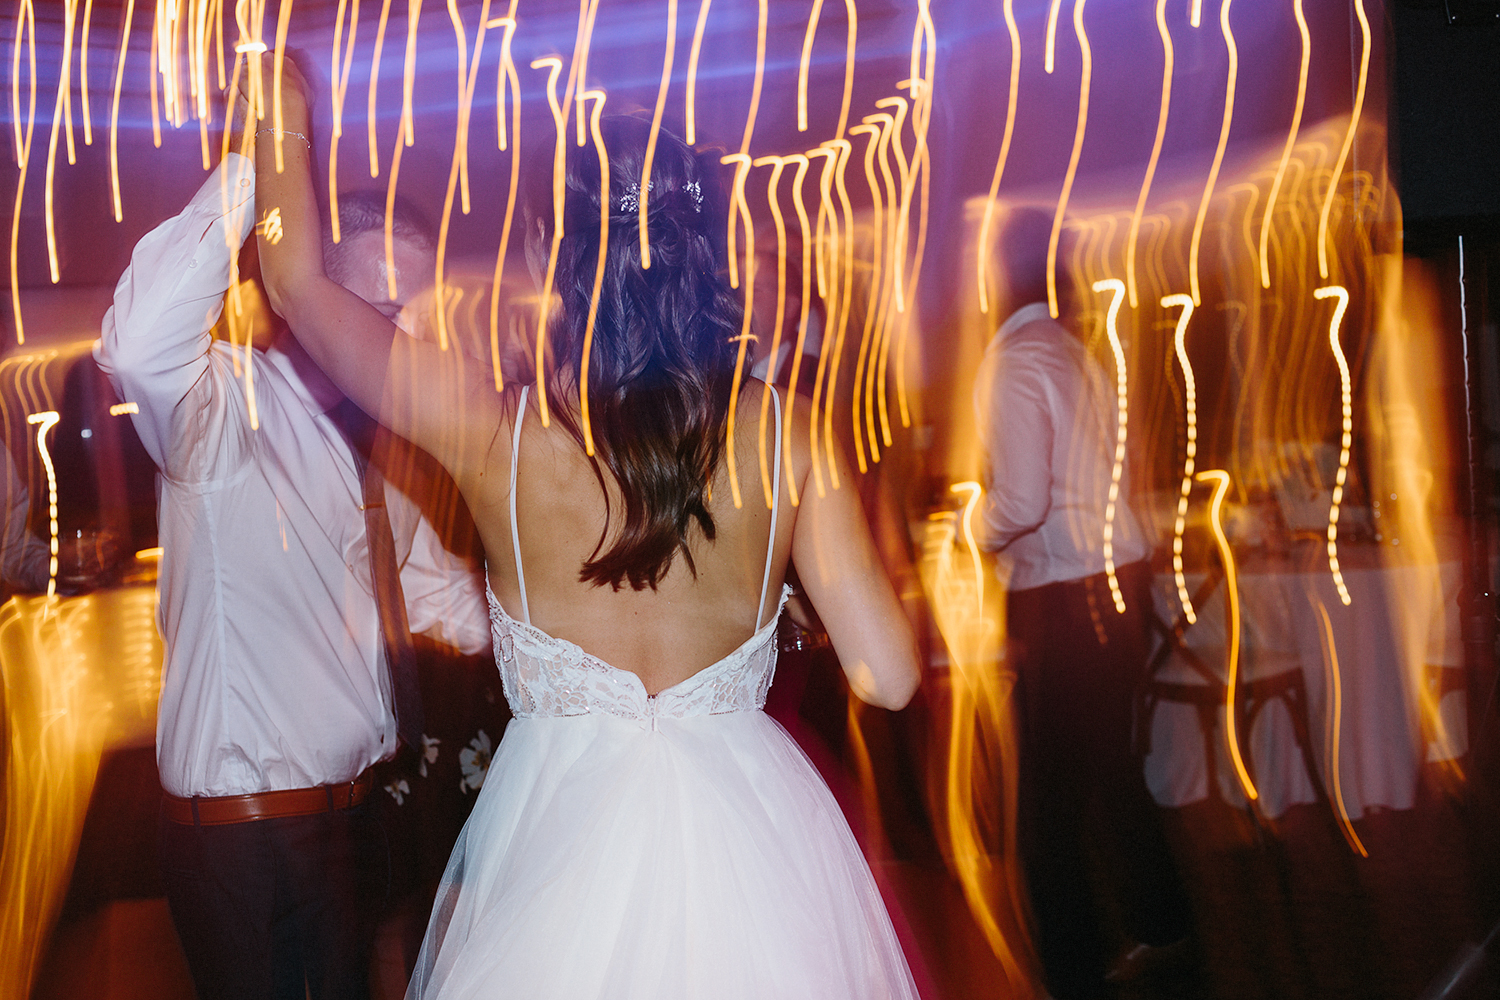 groom-and-bride-dancing-party-live-band-at-reception-At-Eganridge-Resort-Venue-Muskoka-Ontario-Wedding-Photography-by-Ryanne-Hollies-Photography-Toronto-Documentary-Wedding-Photographer.jpg